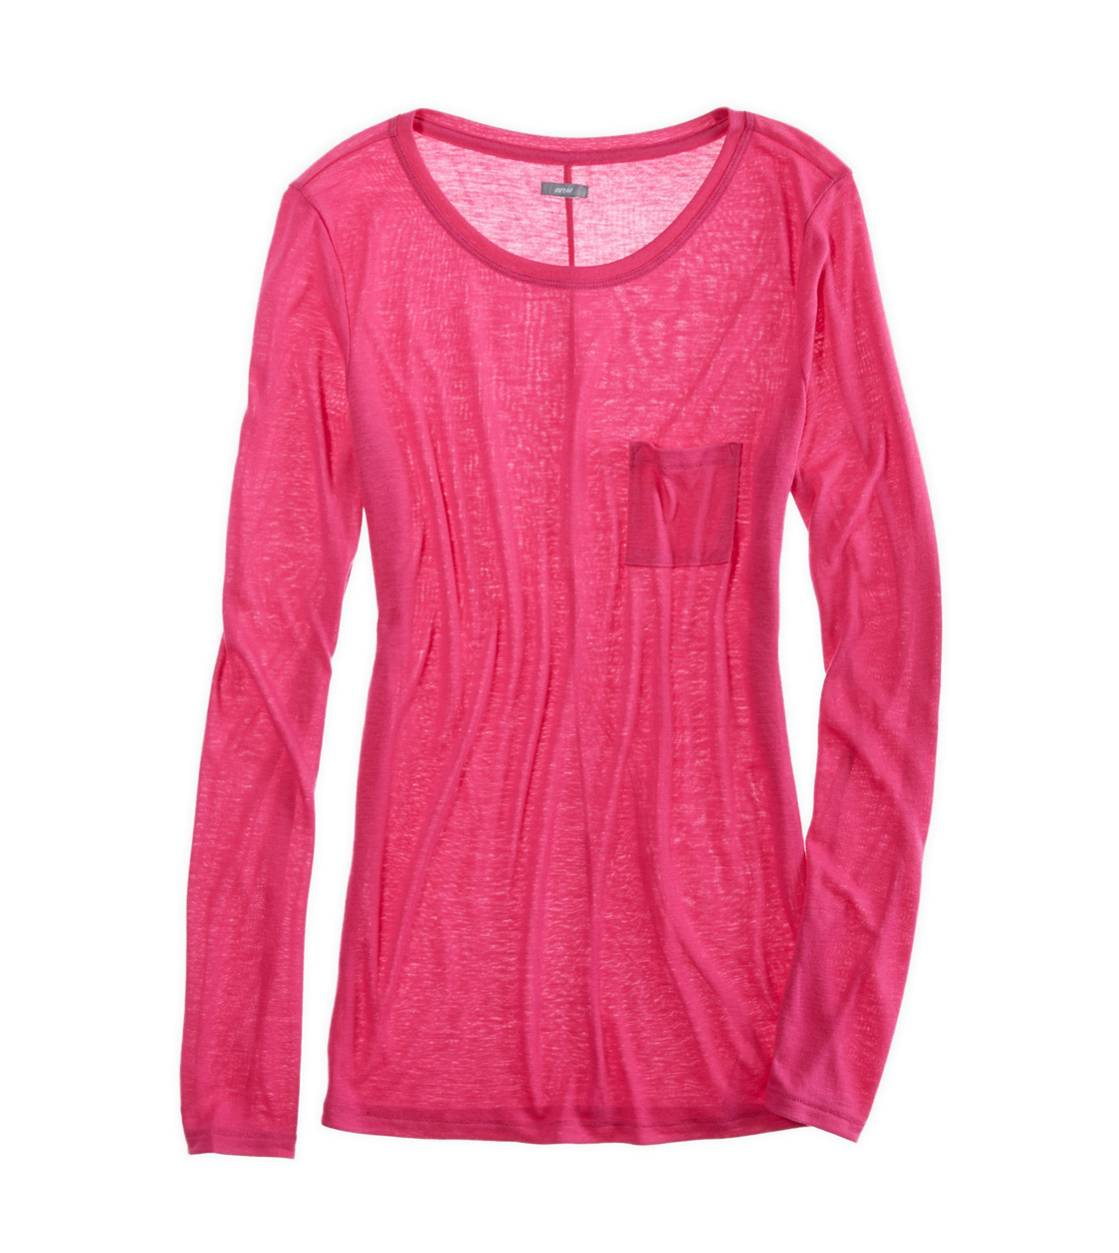 Pink Passion Aerie Comfiest Pocket T-Shirt